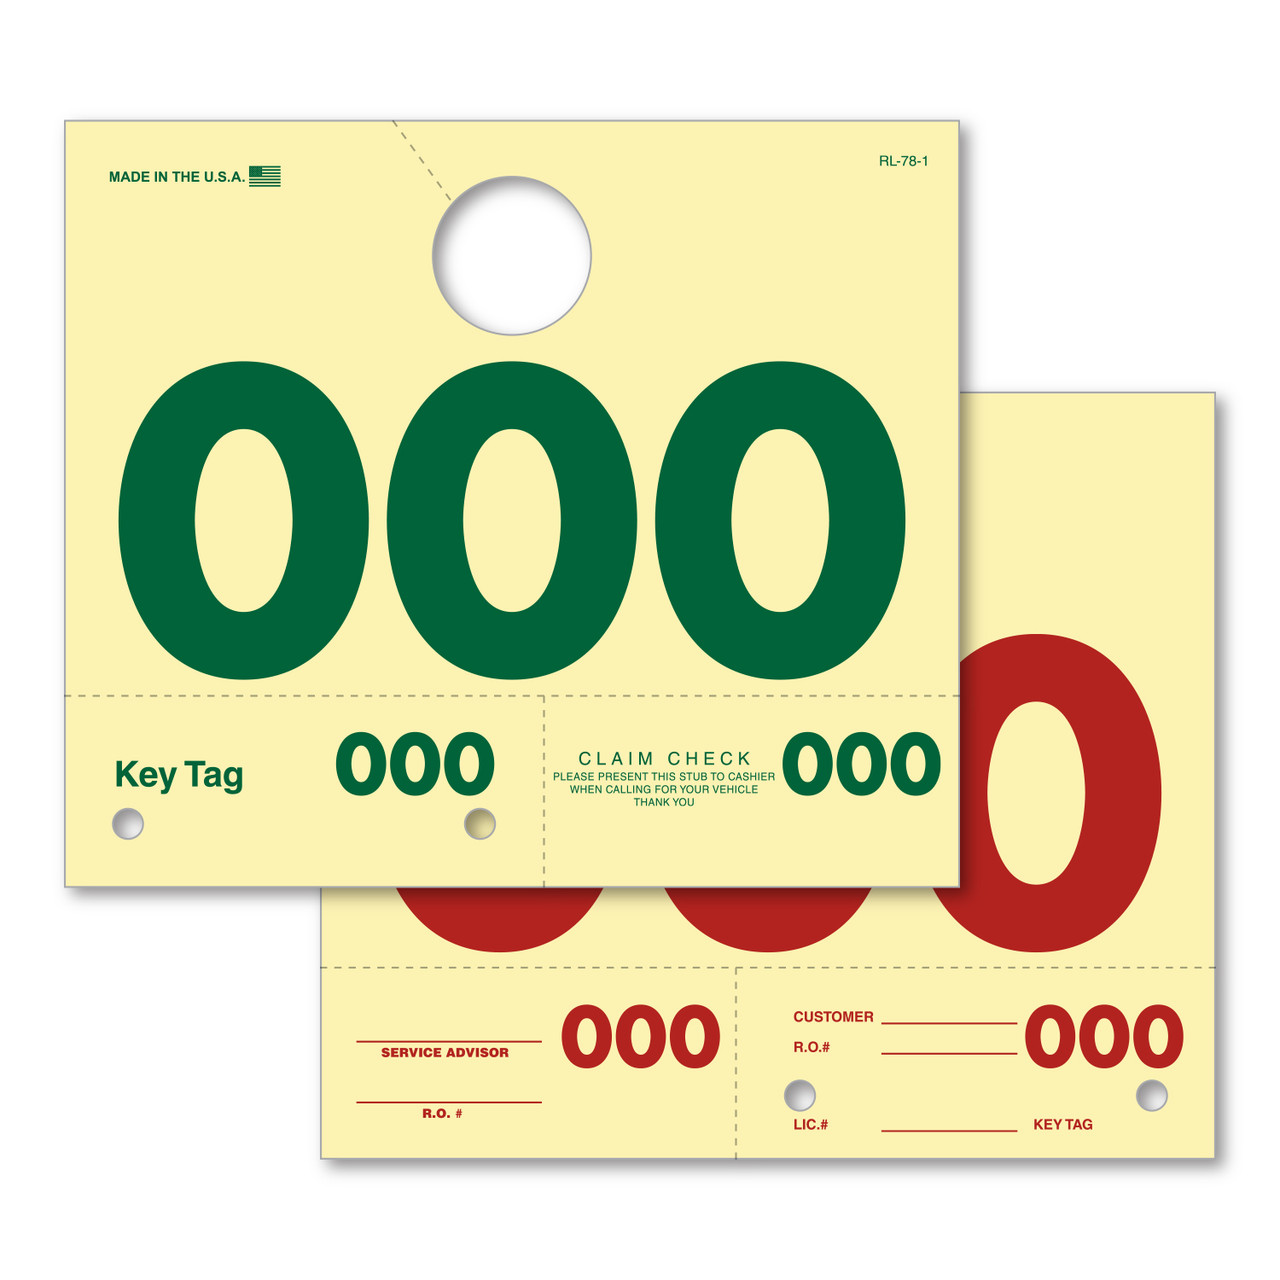 3 Digit Hang Tag (Form #RL-78-200)